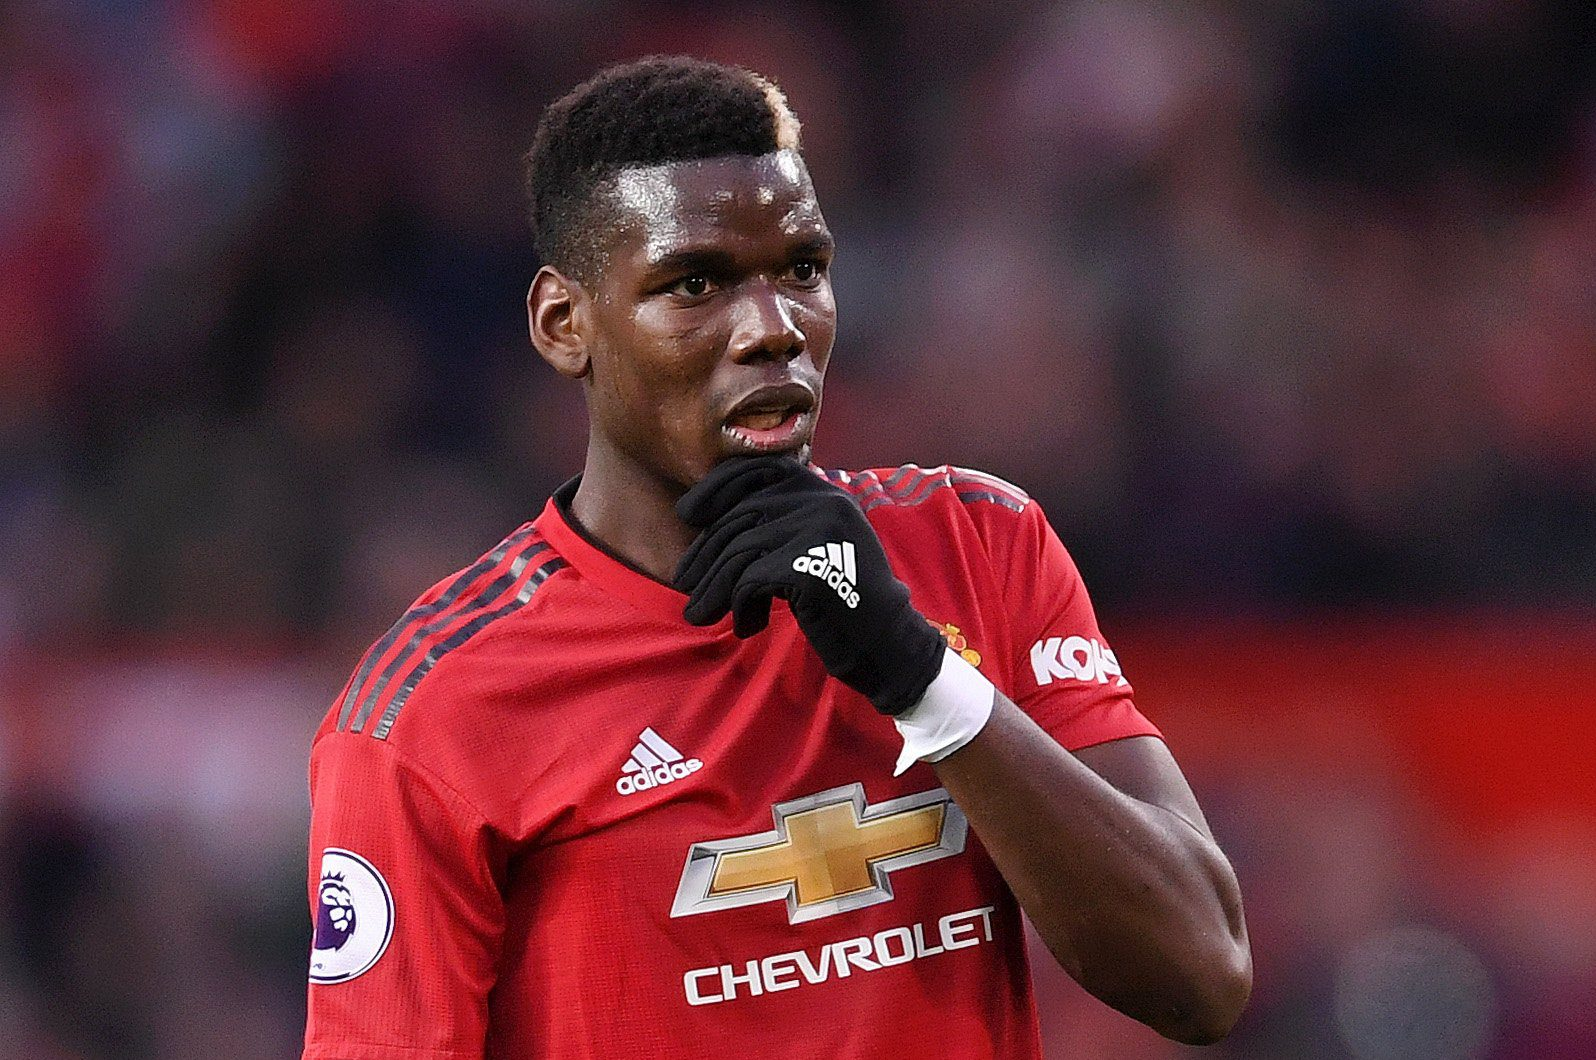 MANCHESTER, ENGLAND - OCTOBER 06: Paul Pogba of Manchester United looks dejected during the Premier League match between Manchester United and Newcastle United at Old Trafford on October 6, 2018 in Manchester, United Kingdom. (Photo by Laurence Griffiths/Getty Images)